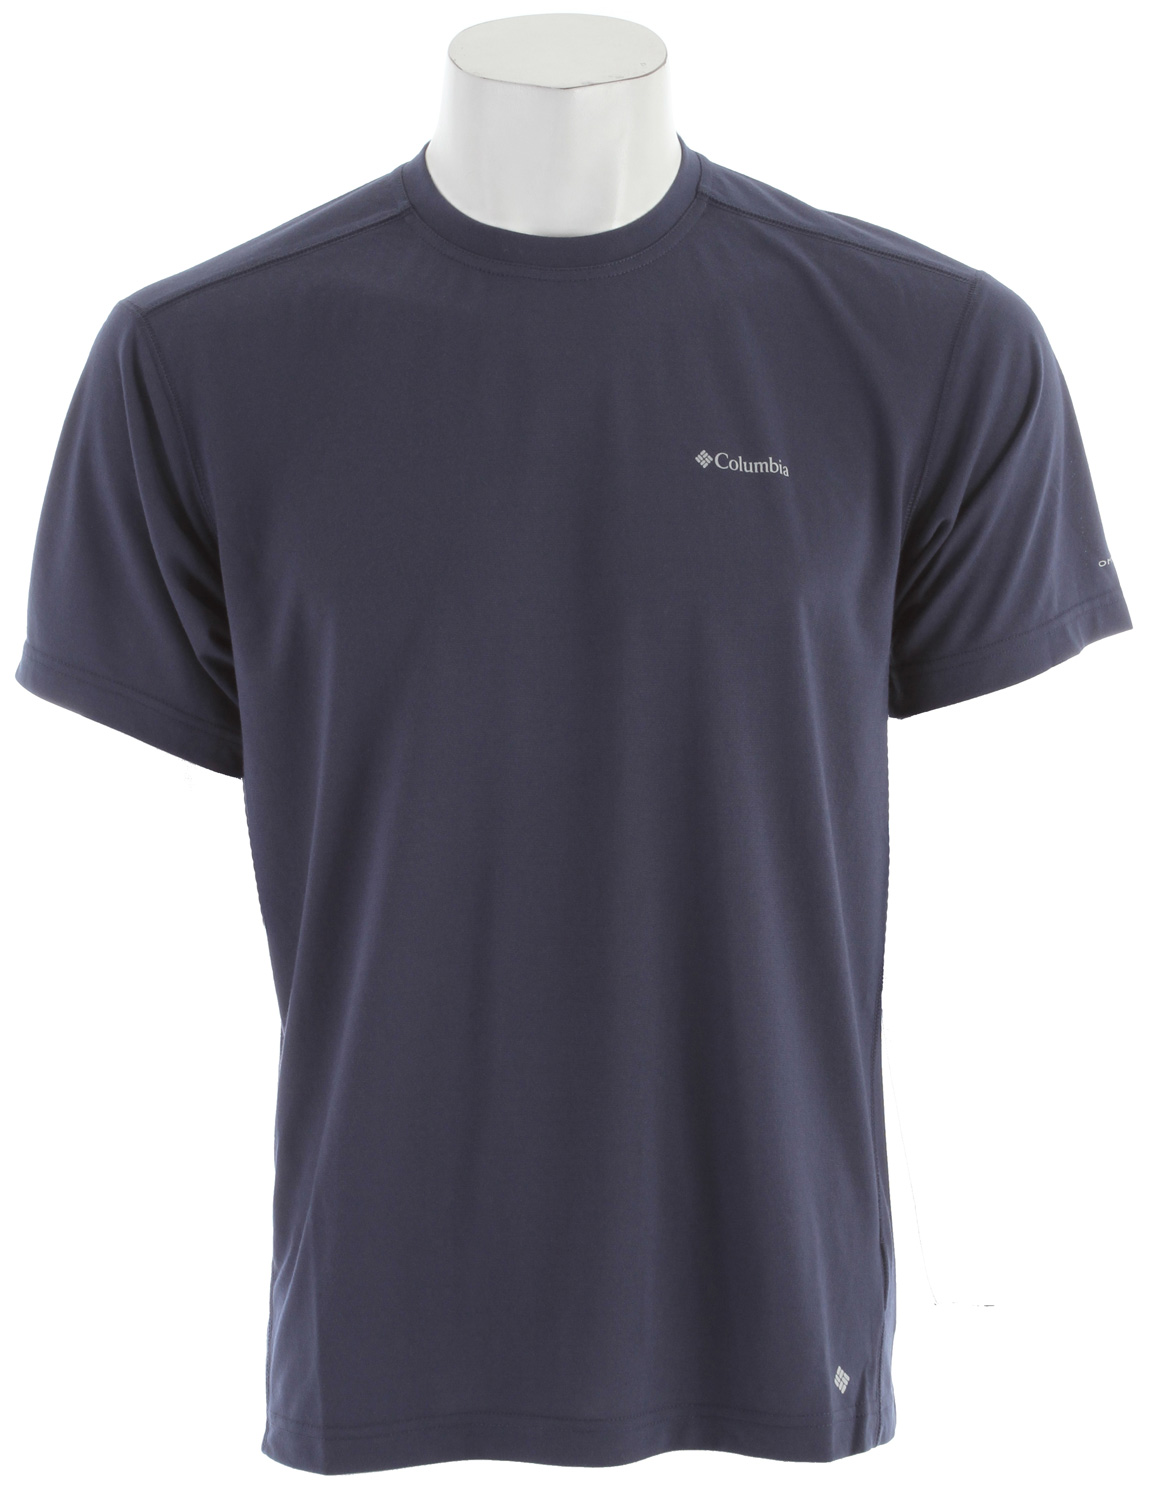 Key Features of the Columbia Mountain Tech II Crew Base Layer Shirt: 100% polyester jersey Omni-Wick™ UPF 15 sun protection Antimicrobial - $27.95